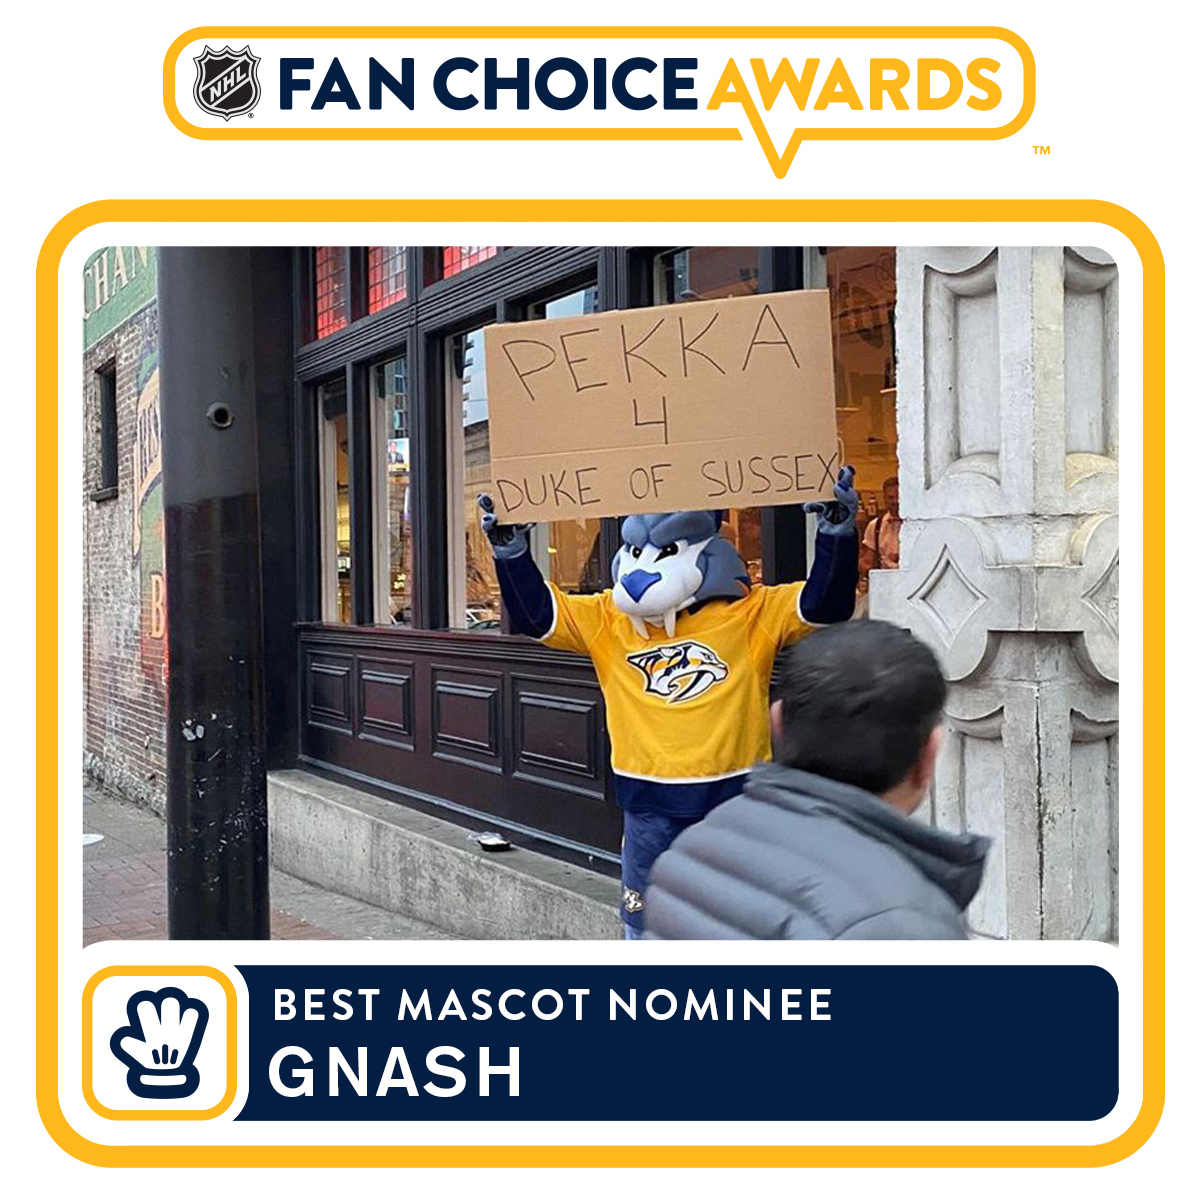 😻😻😻 Cast your vote now for the @NHL's Best Mascot: bit.ly/2Z055hM